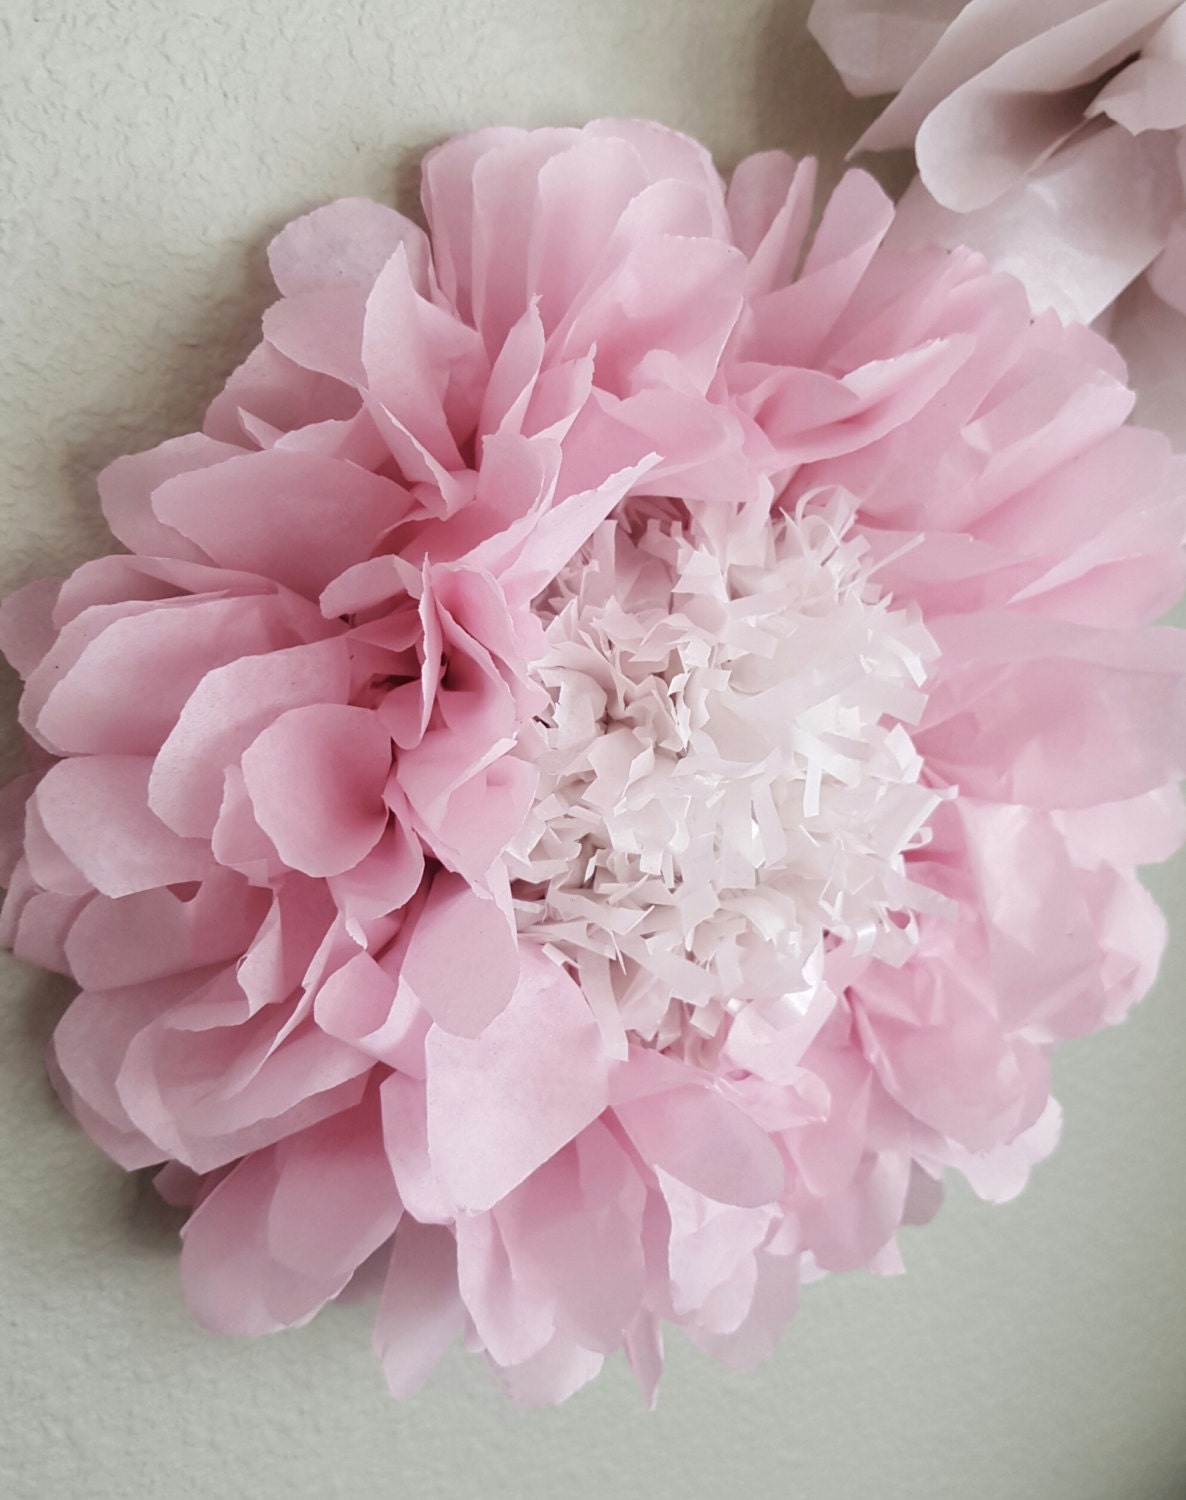 Wall Decor Tissue Paper : Tissue paper flowers nursery decor girl